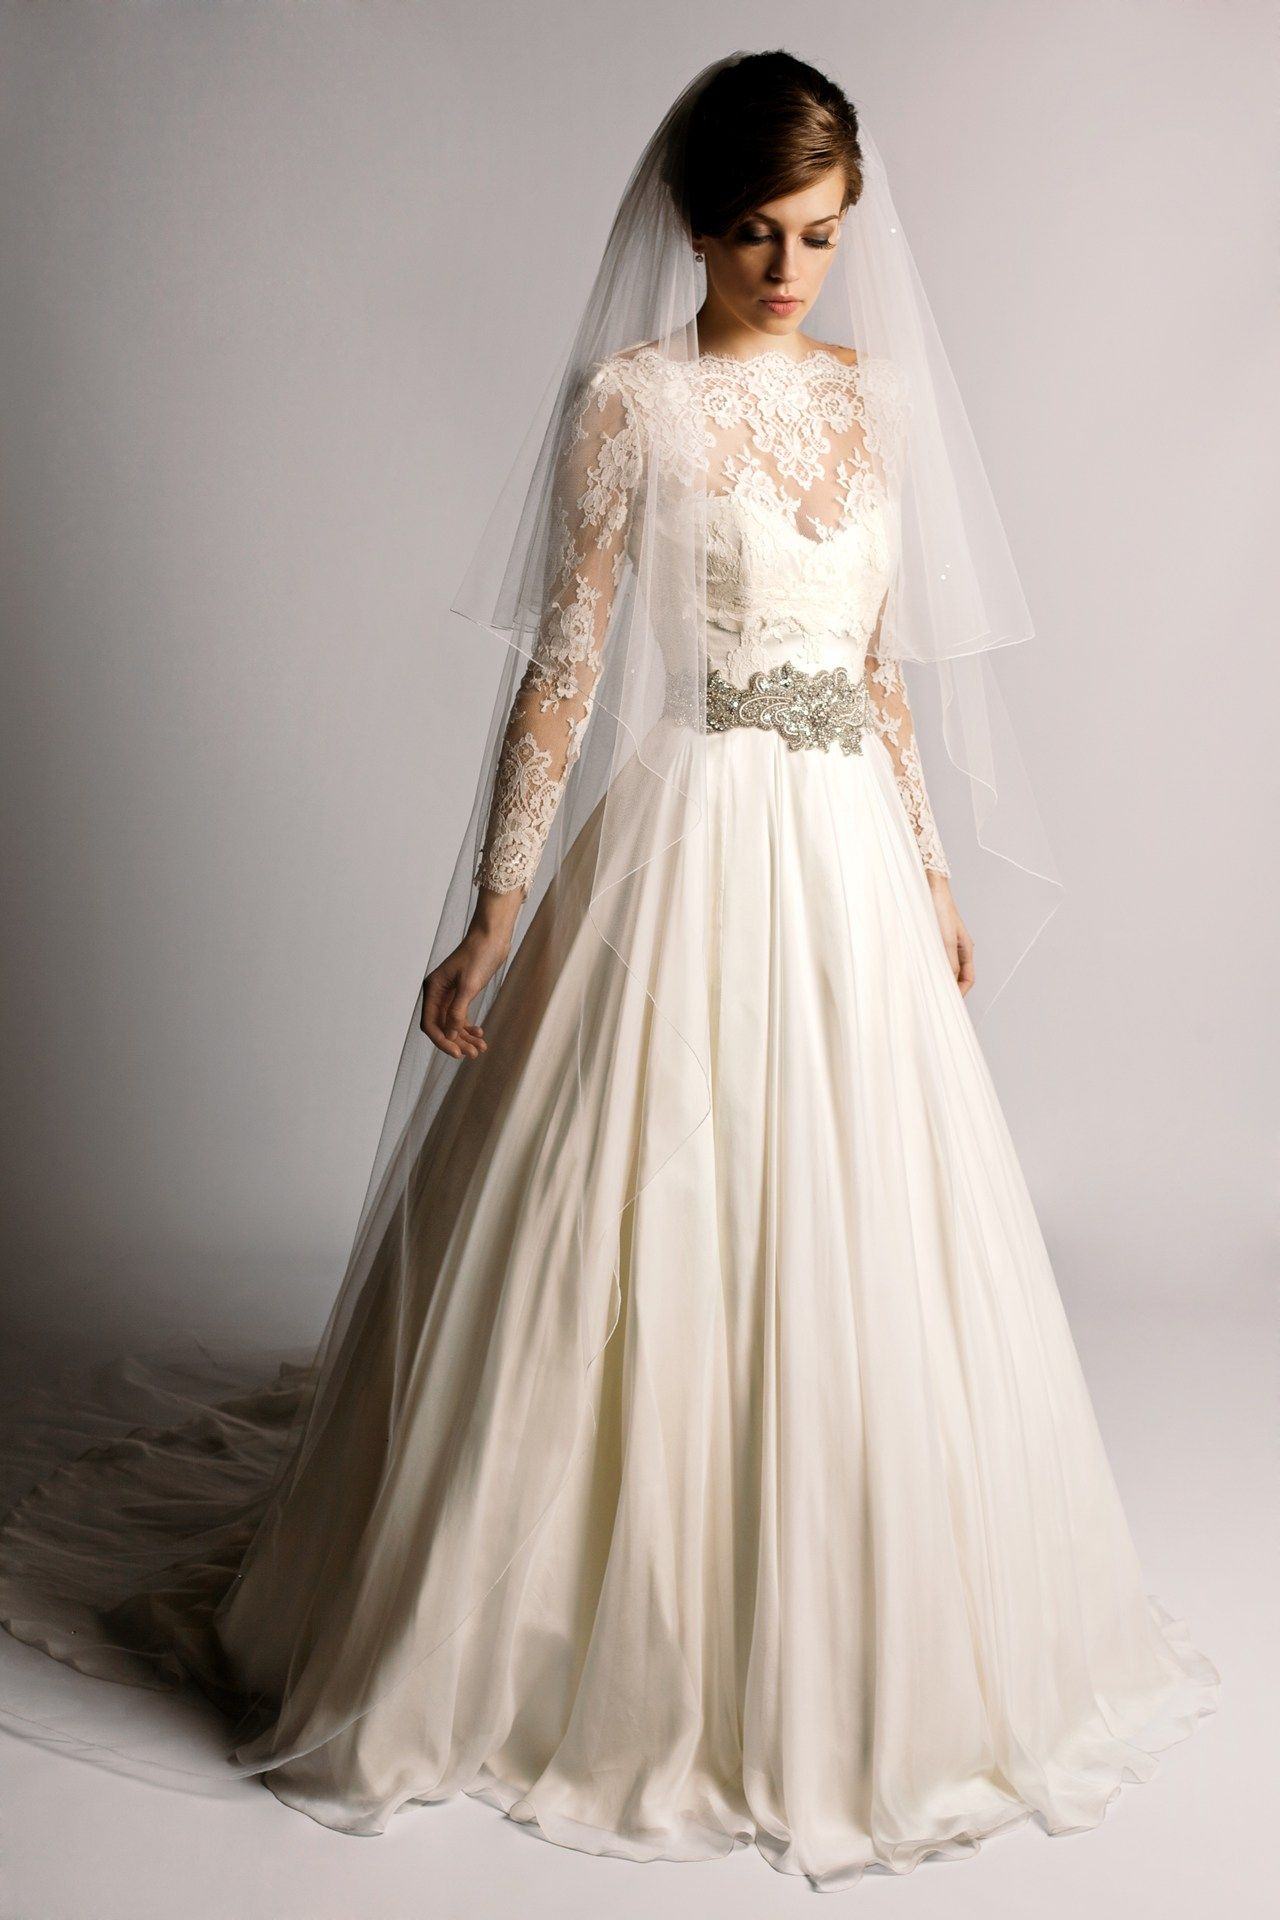 Wedding Dresses - The Ultimate Gallery (BridesMagazine.co.uk) | Uk ...